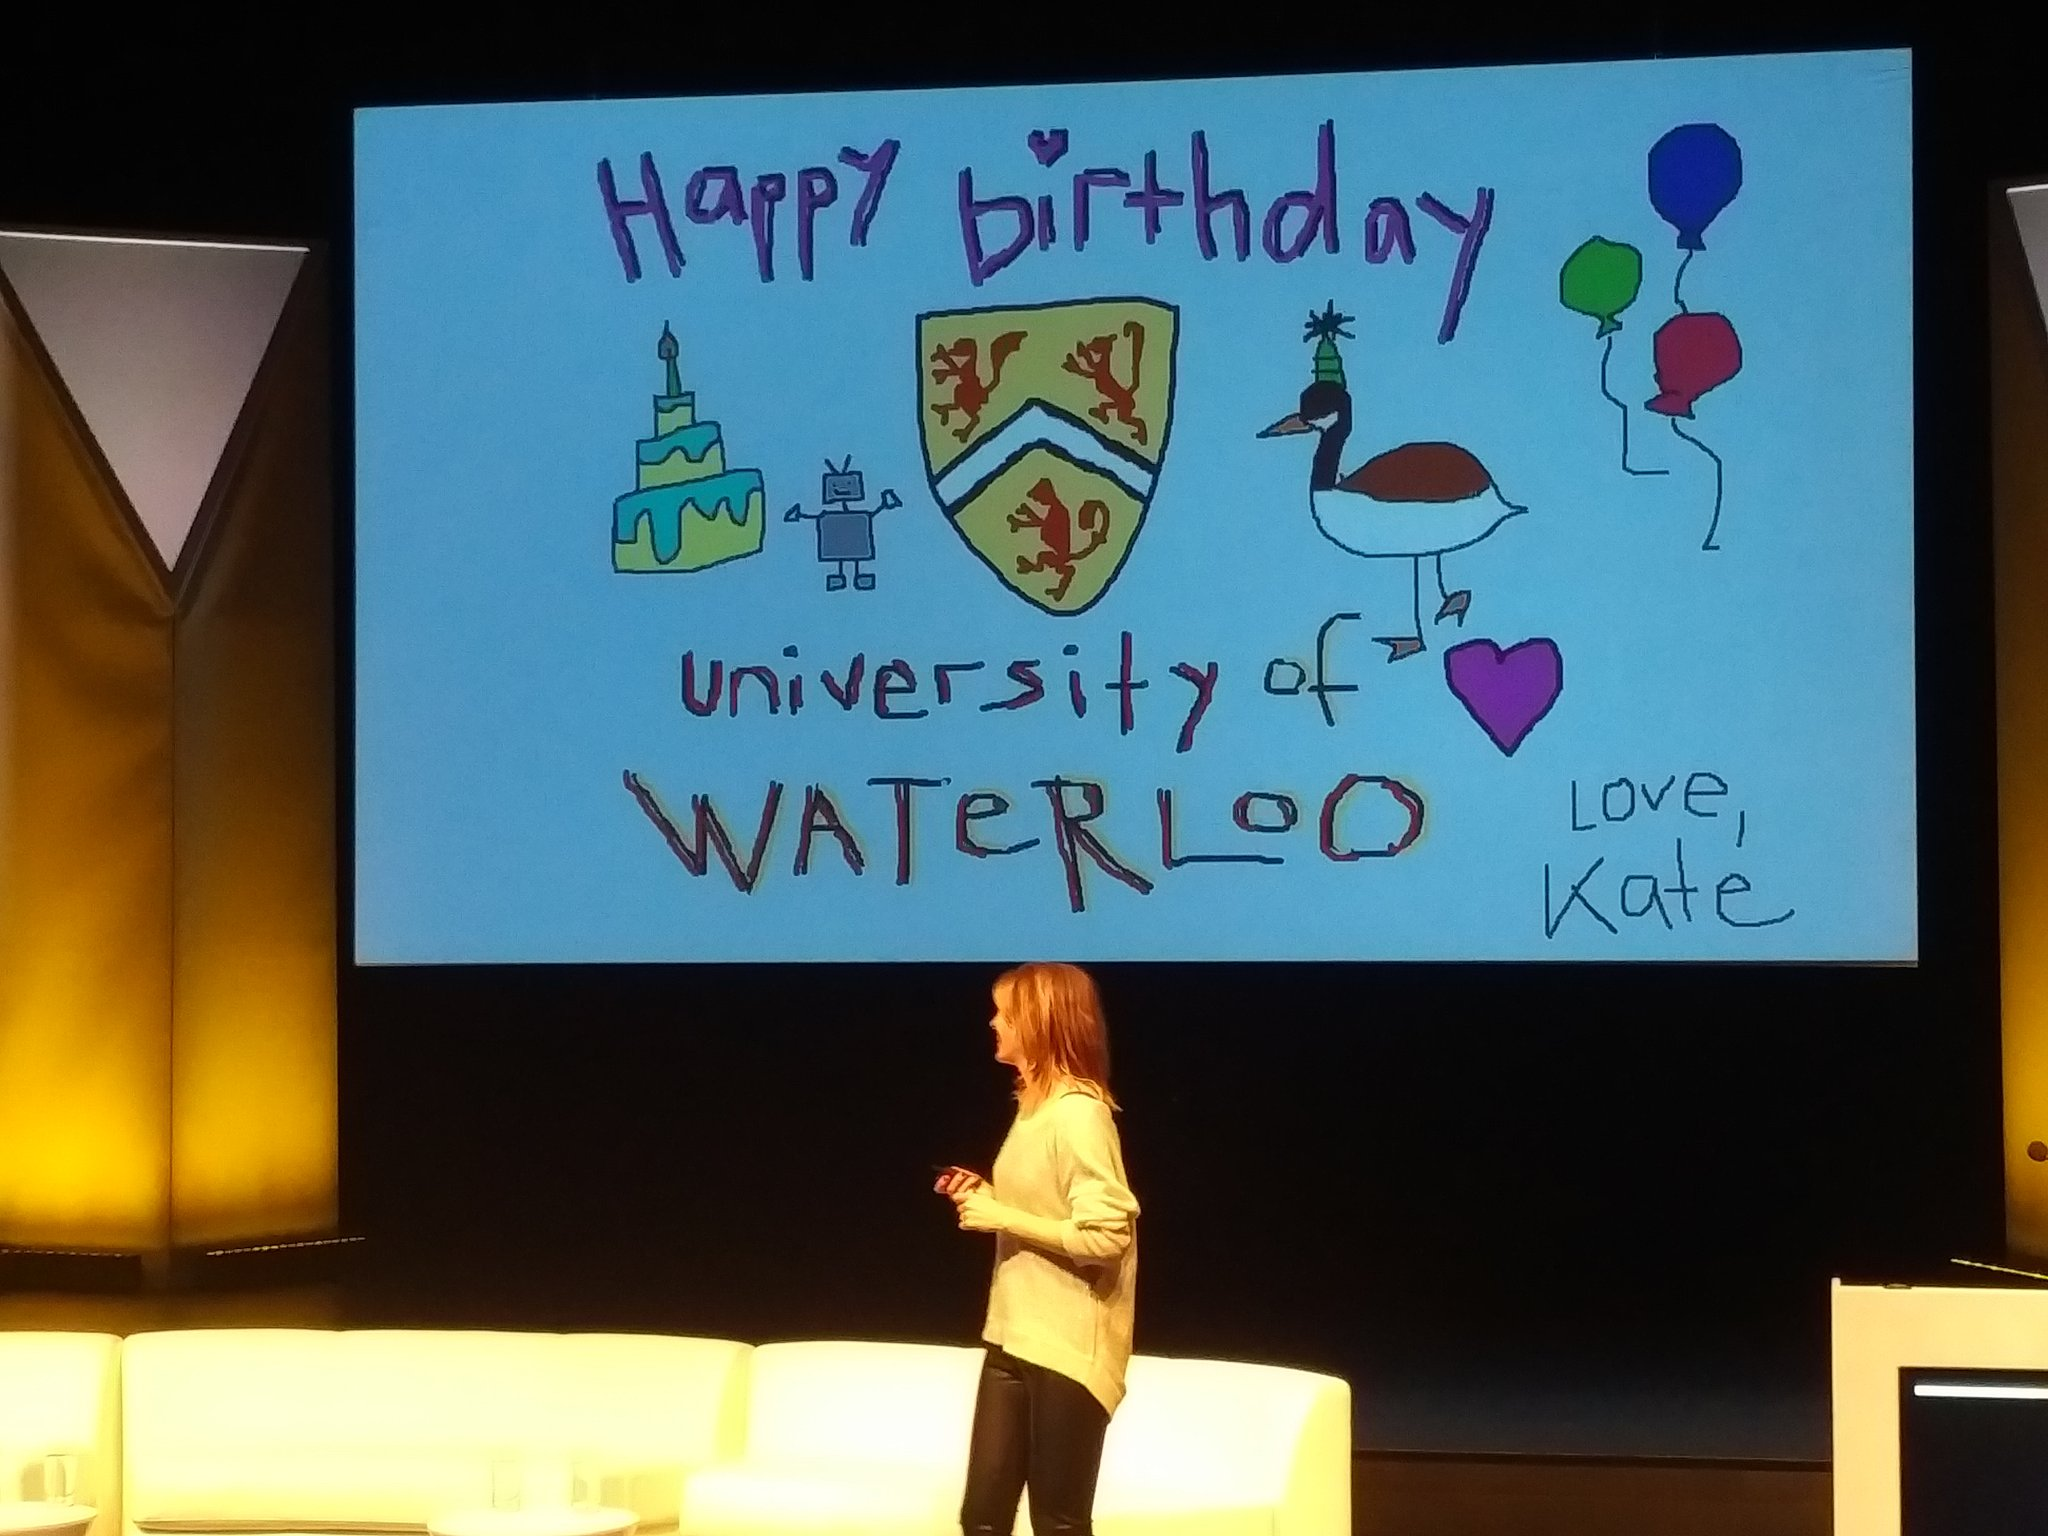 Love the #UWaterloo60 birthday card! https://t.co/DzN5DhHfxp